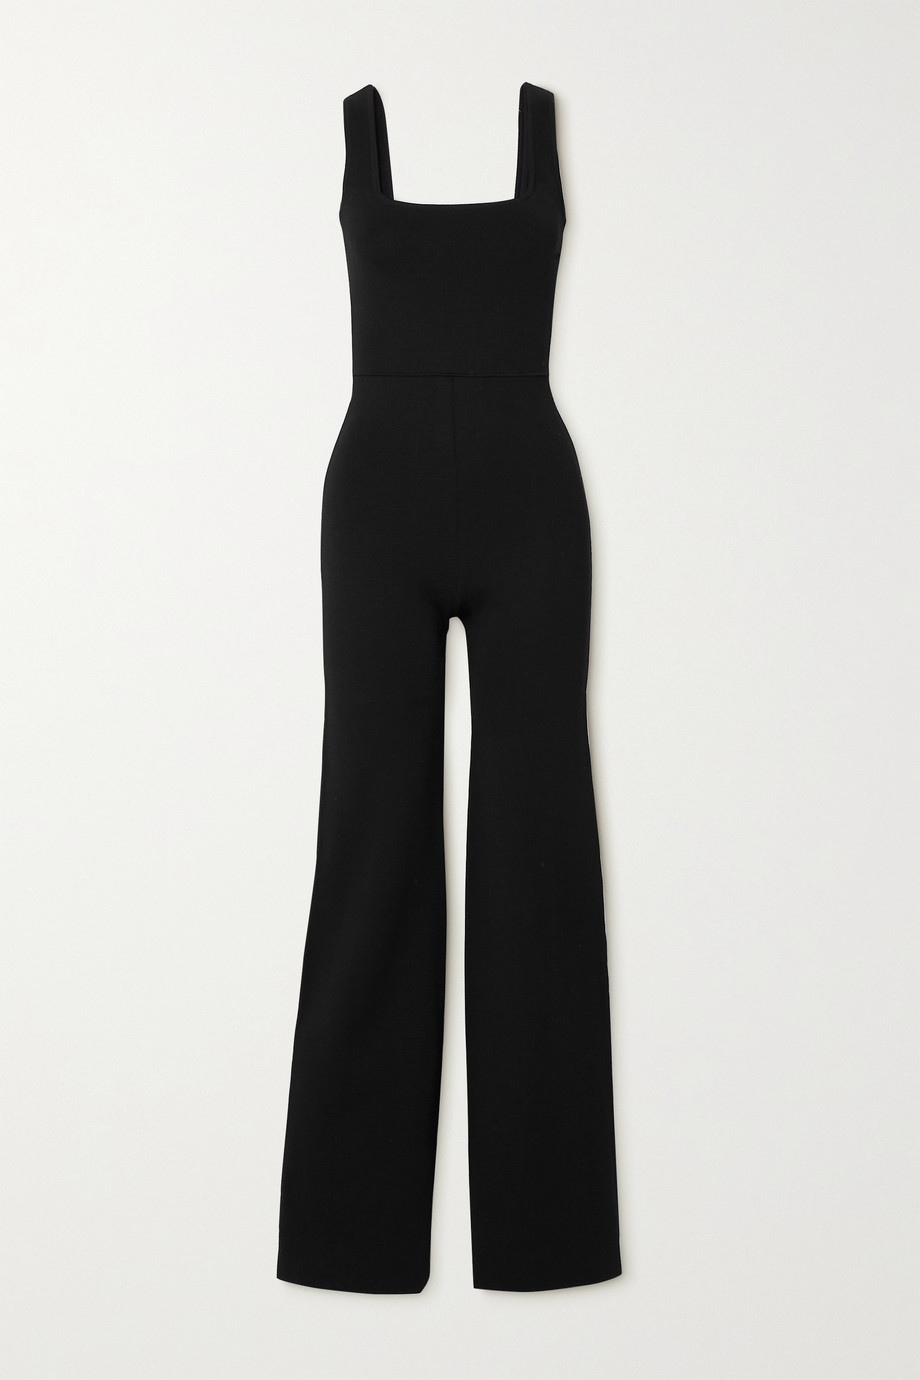 GAUGE81 + NET SUSTAIN stretch-jersey jumpsuit